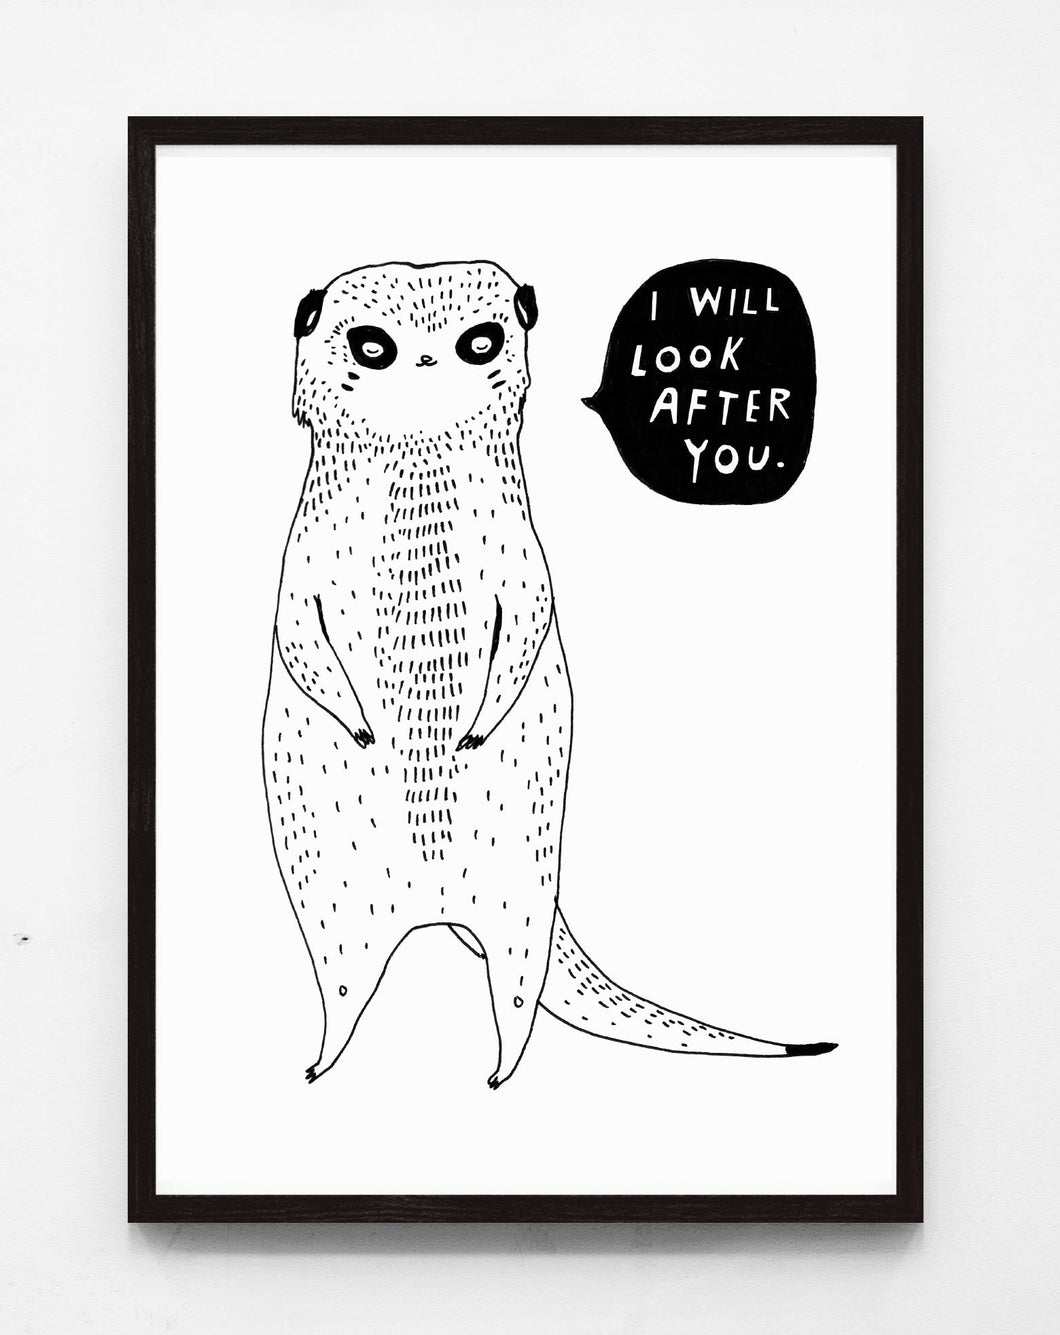 I will look after you - print